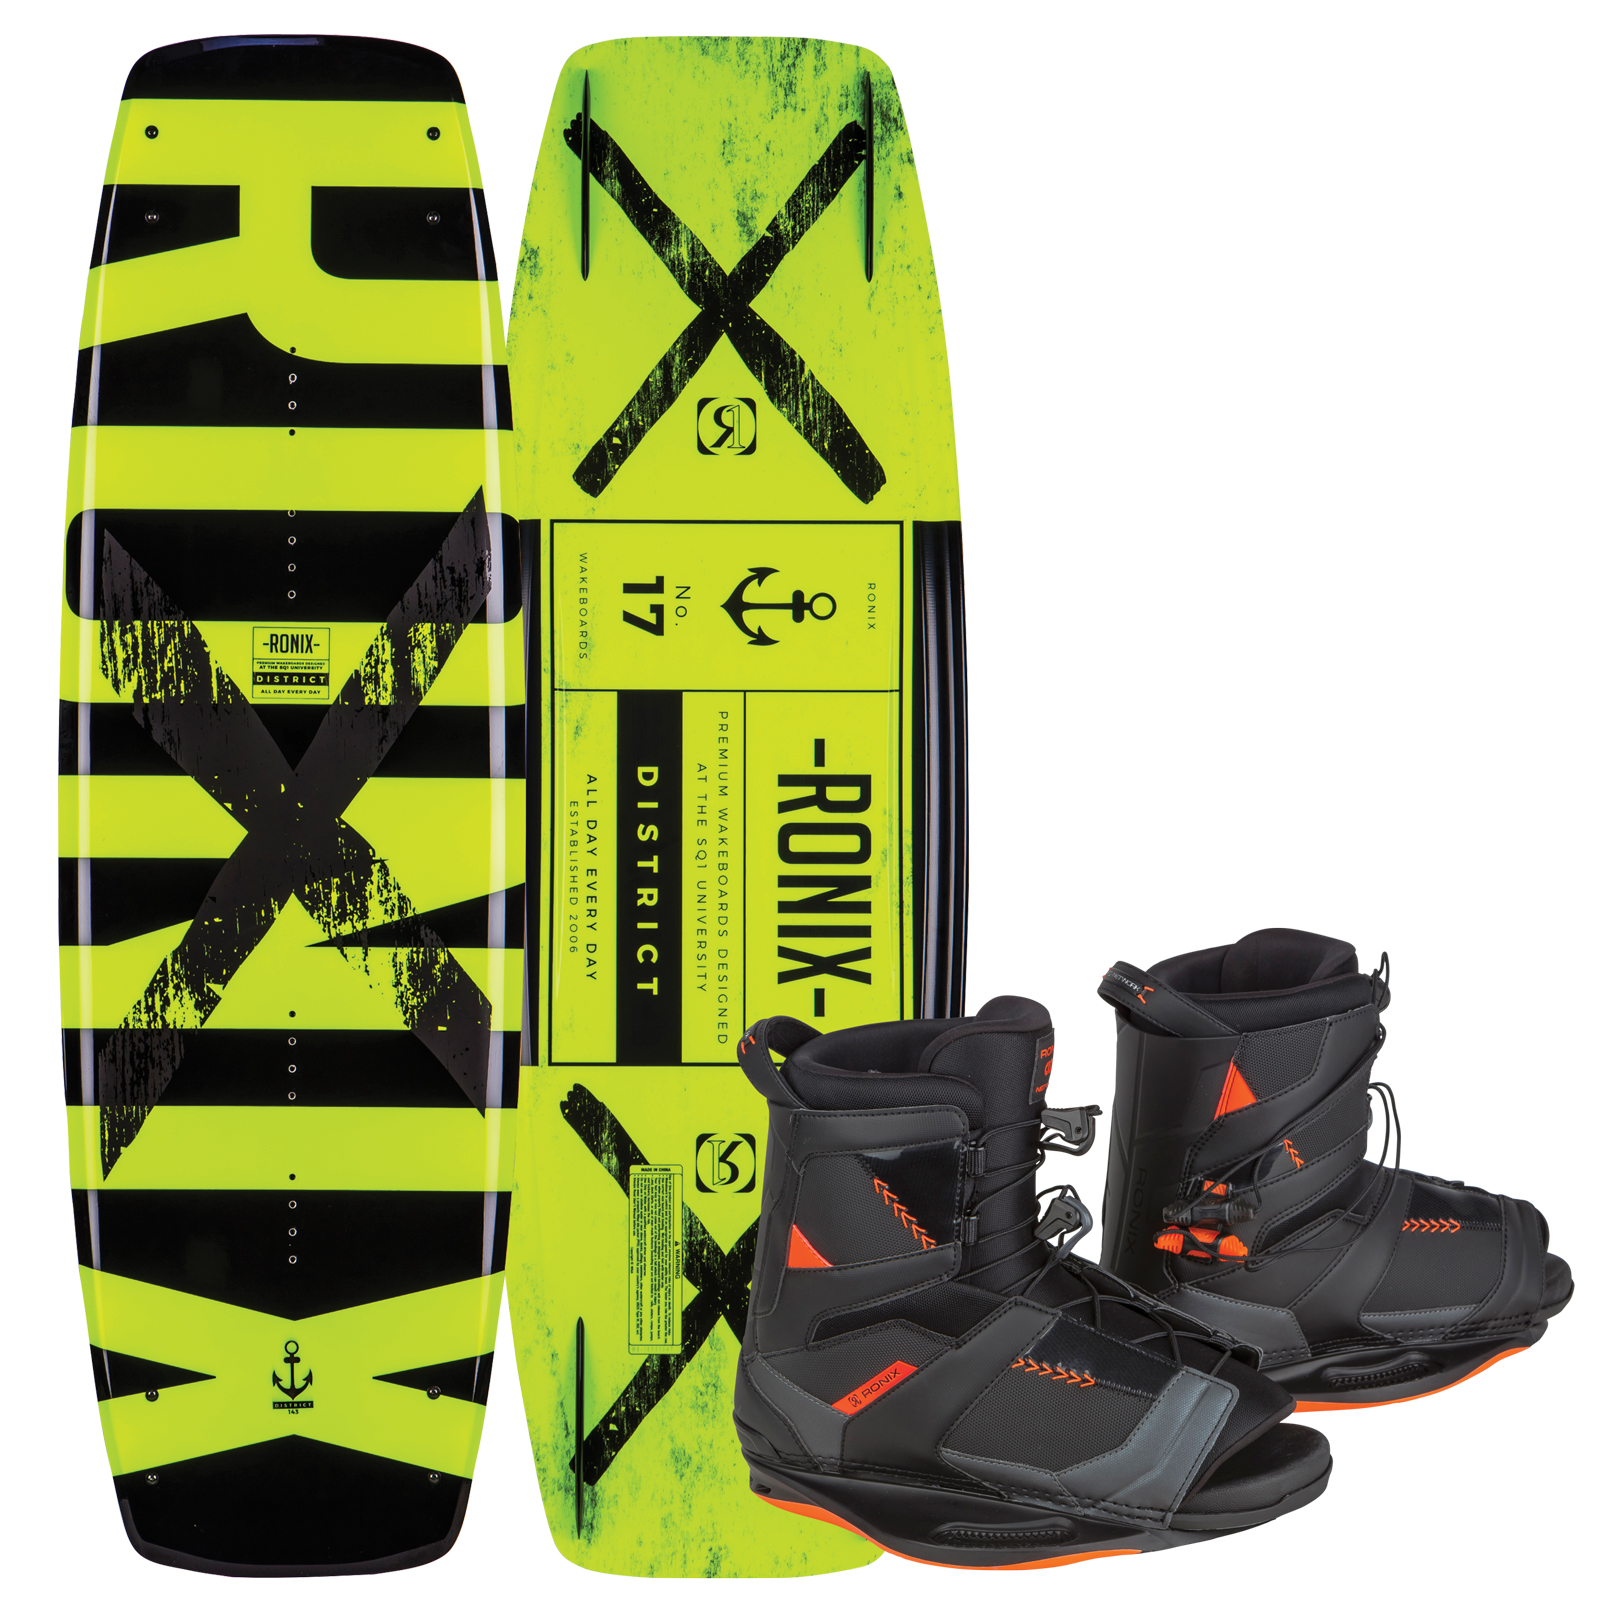 DISTRICT 138 W/ NETWORK PACKAGE RONIX 2017